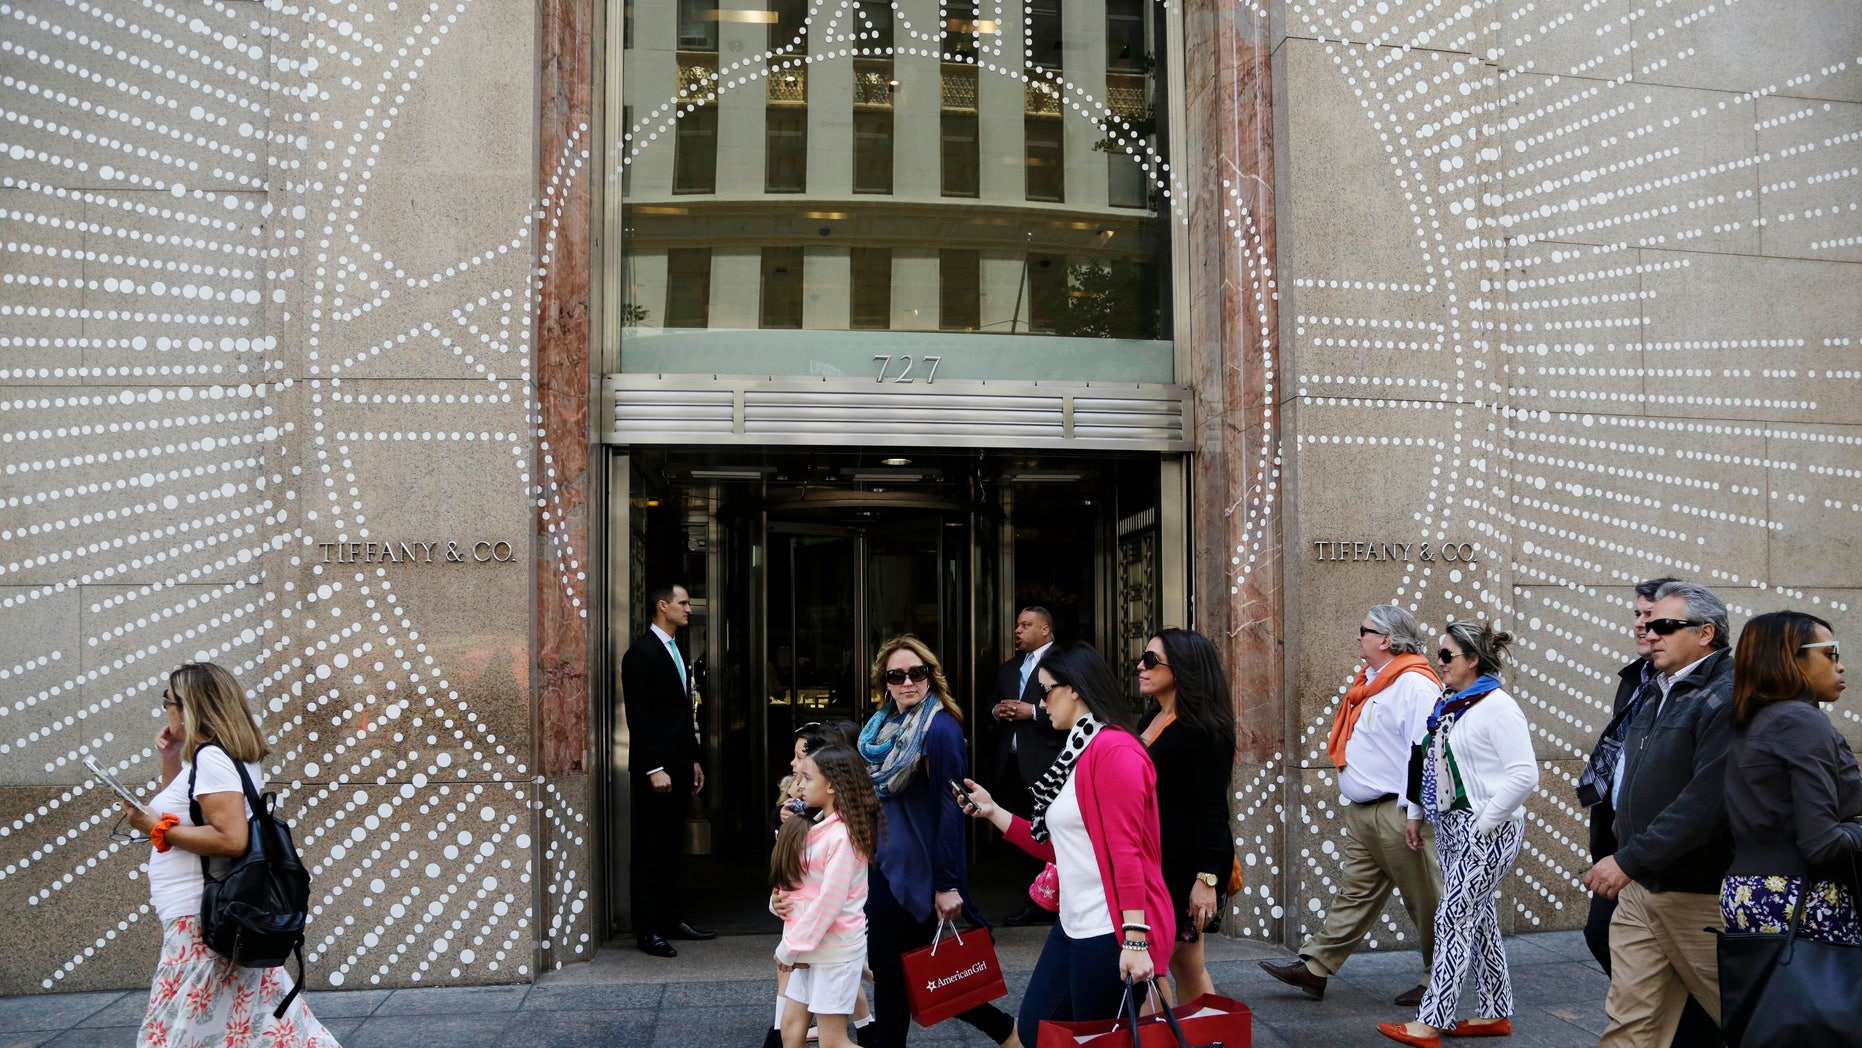 Shoppers walk by Tiffany & Company's Fifth Avenue store in New York.